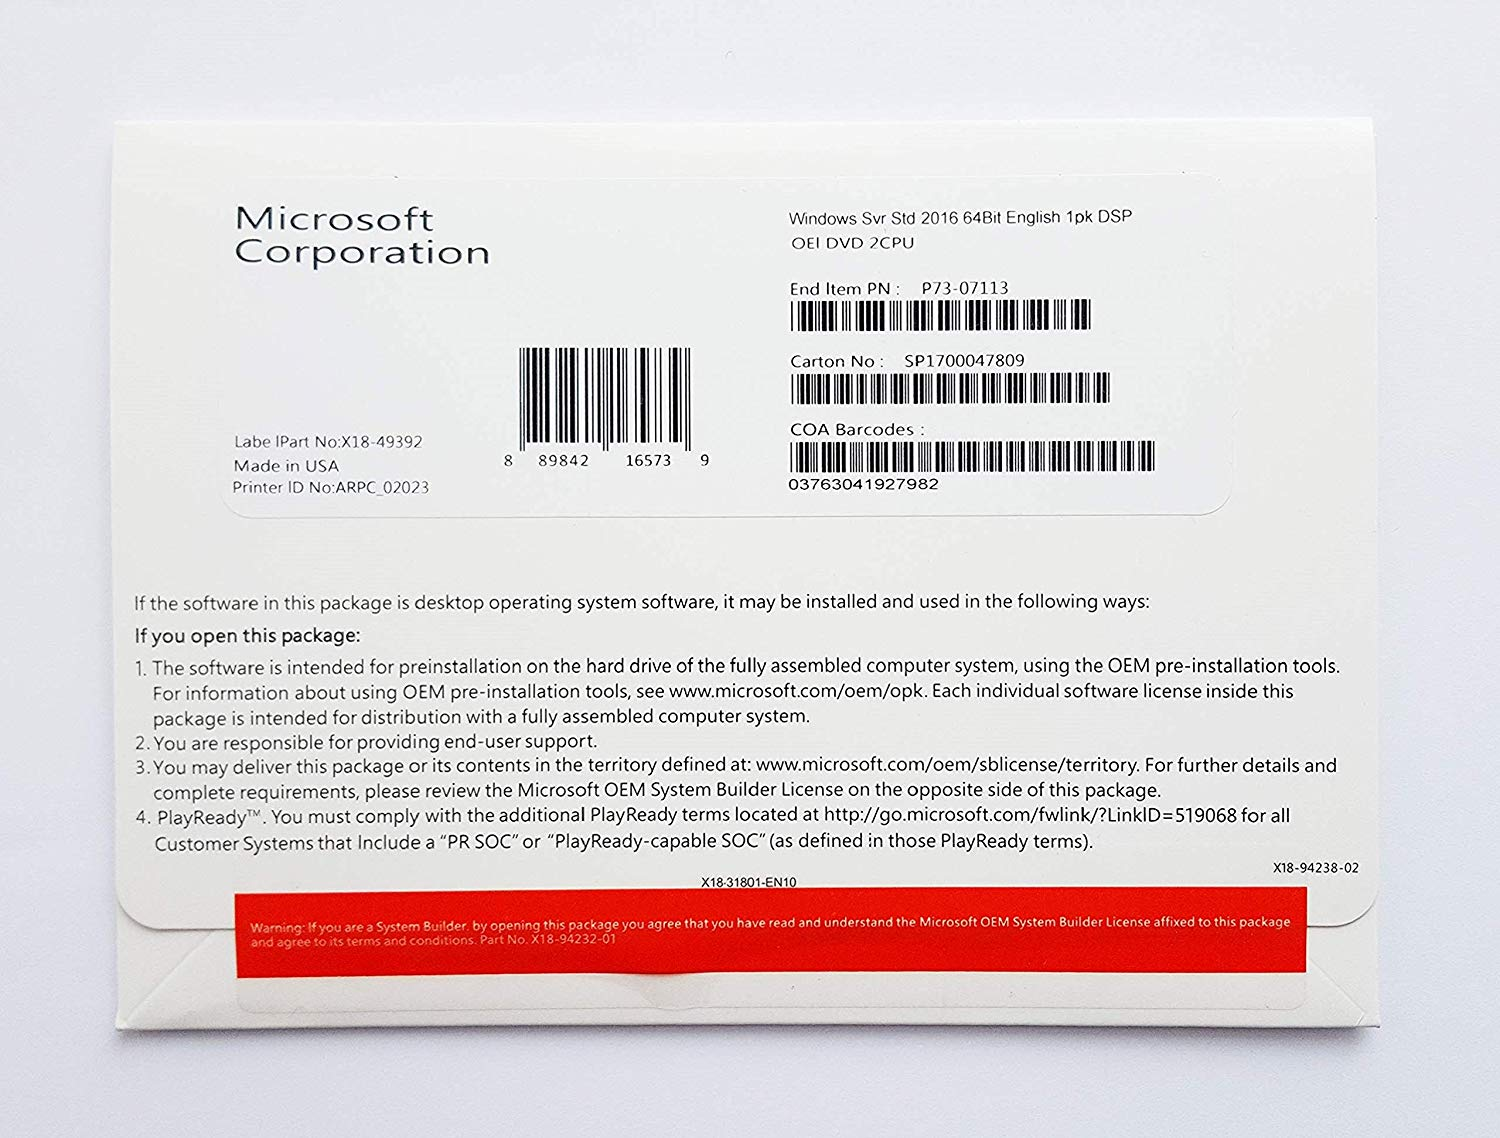 MS WINDOWS SVR STD 2016 64BIT ENGLISH 1PK 16 CORE